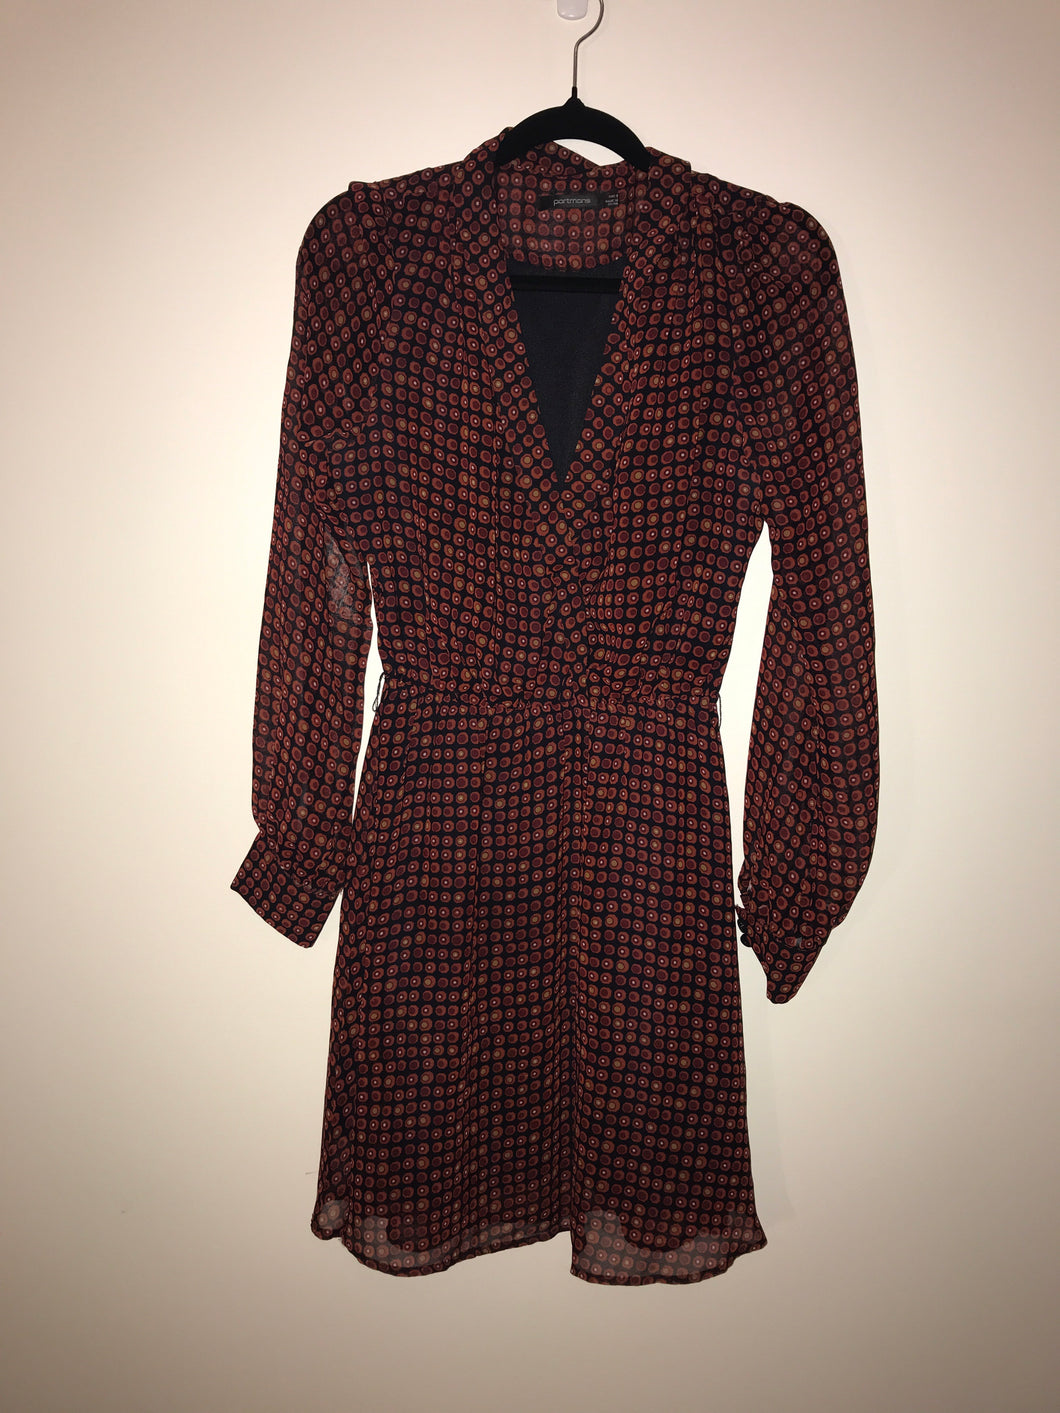 Portmans maroon spotted long sleeve dress Size 8